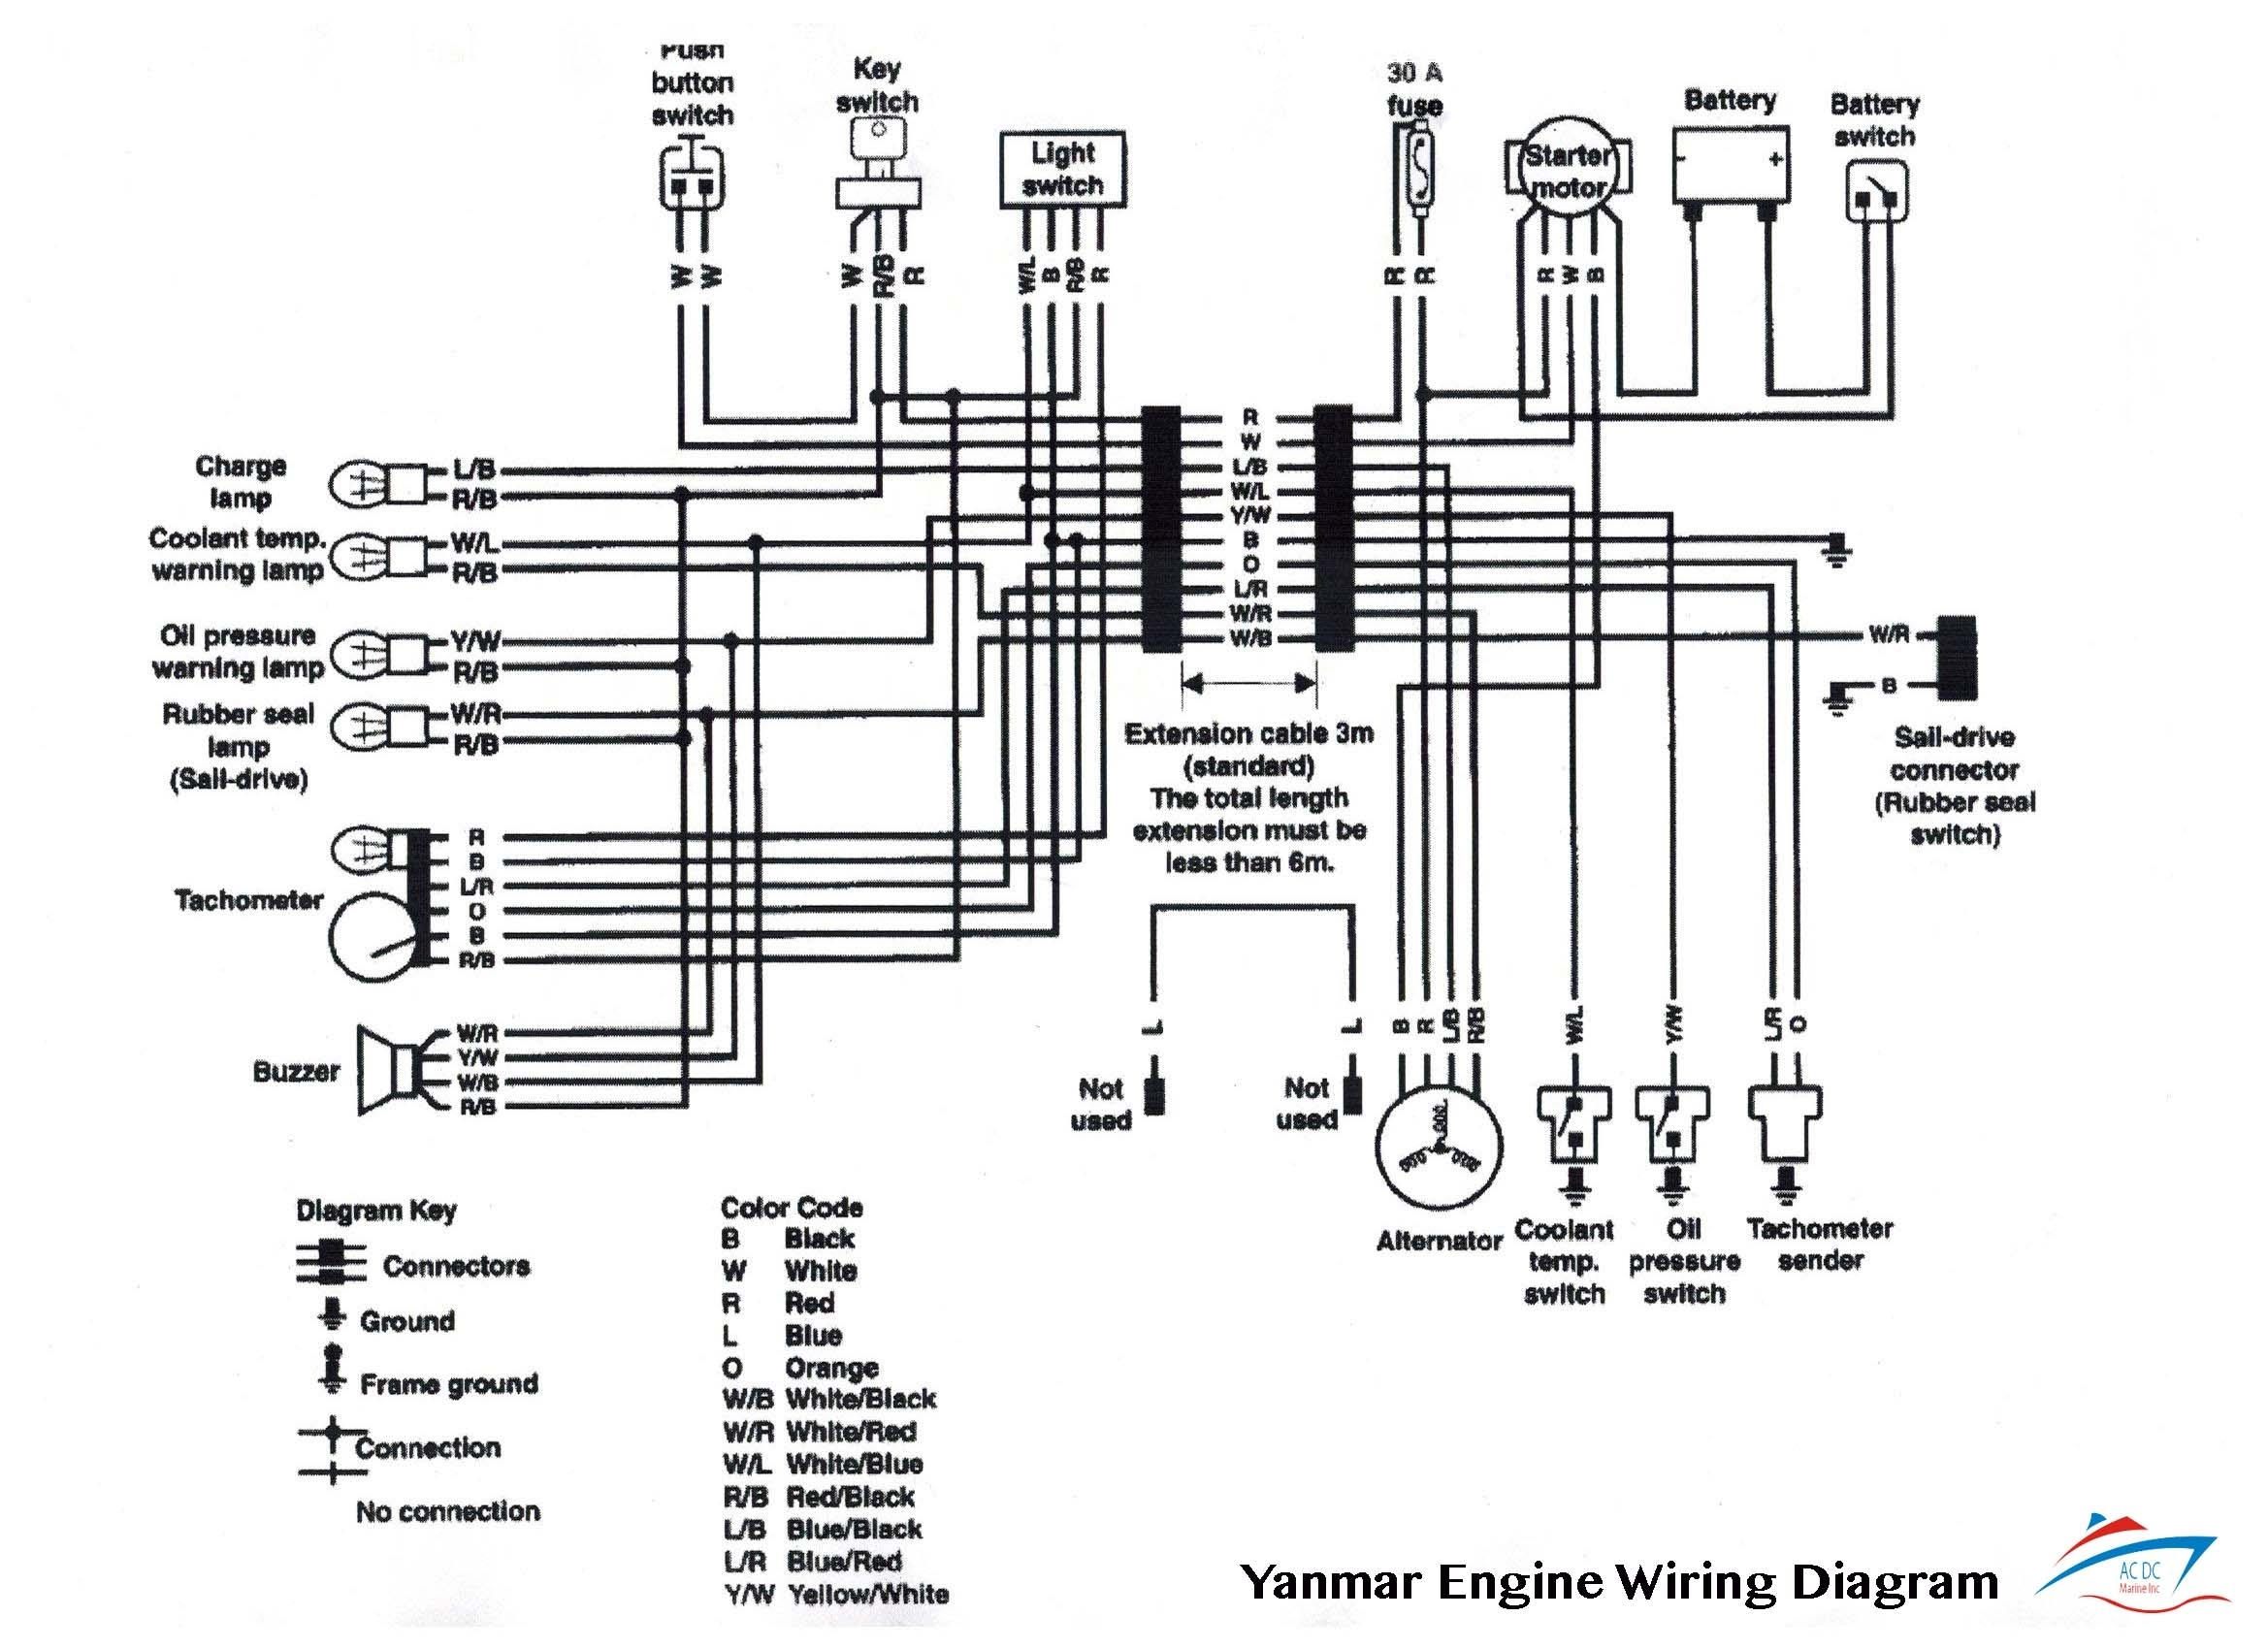 yanmar wiring schematic wiring diagram todaysyanmar wiring diagram wiring schematic chevy wiring diagrams automotive yanmar wiring diagram wiring library chevy alternator